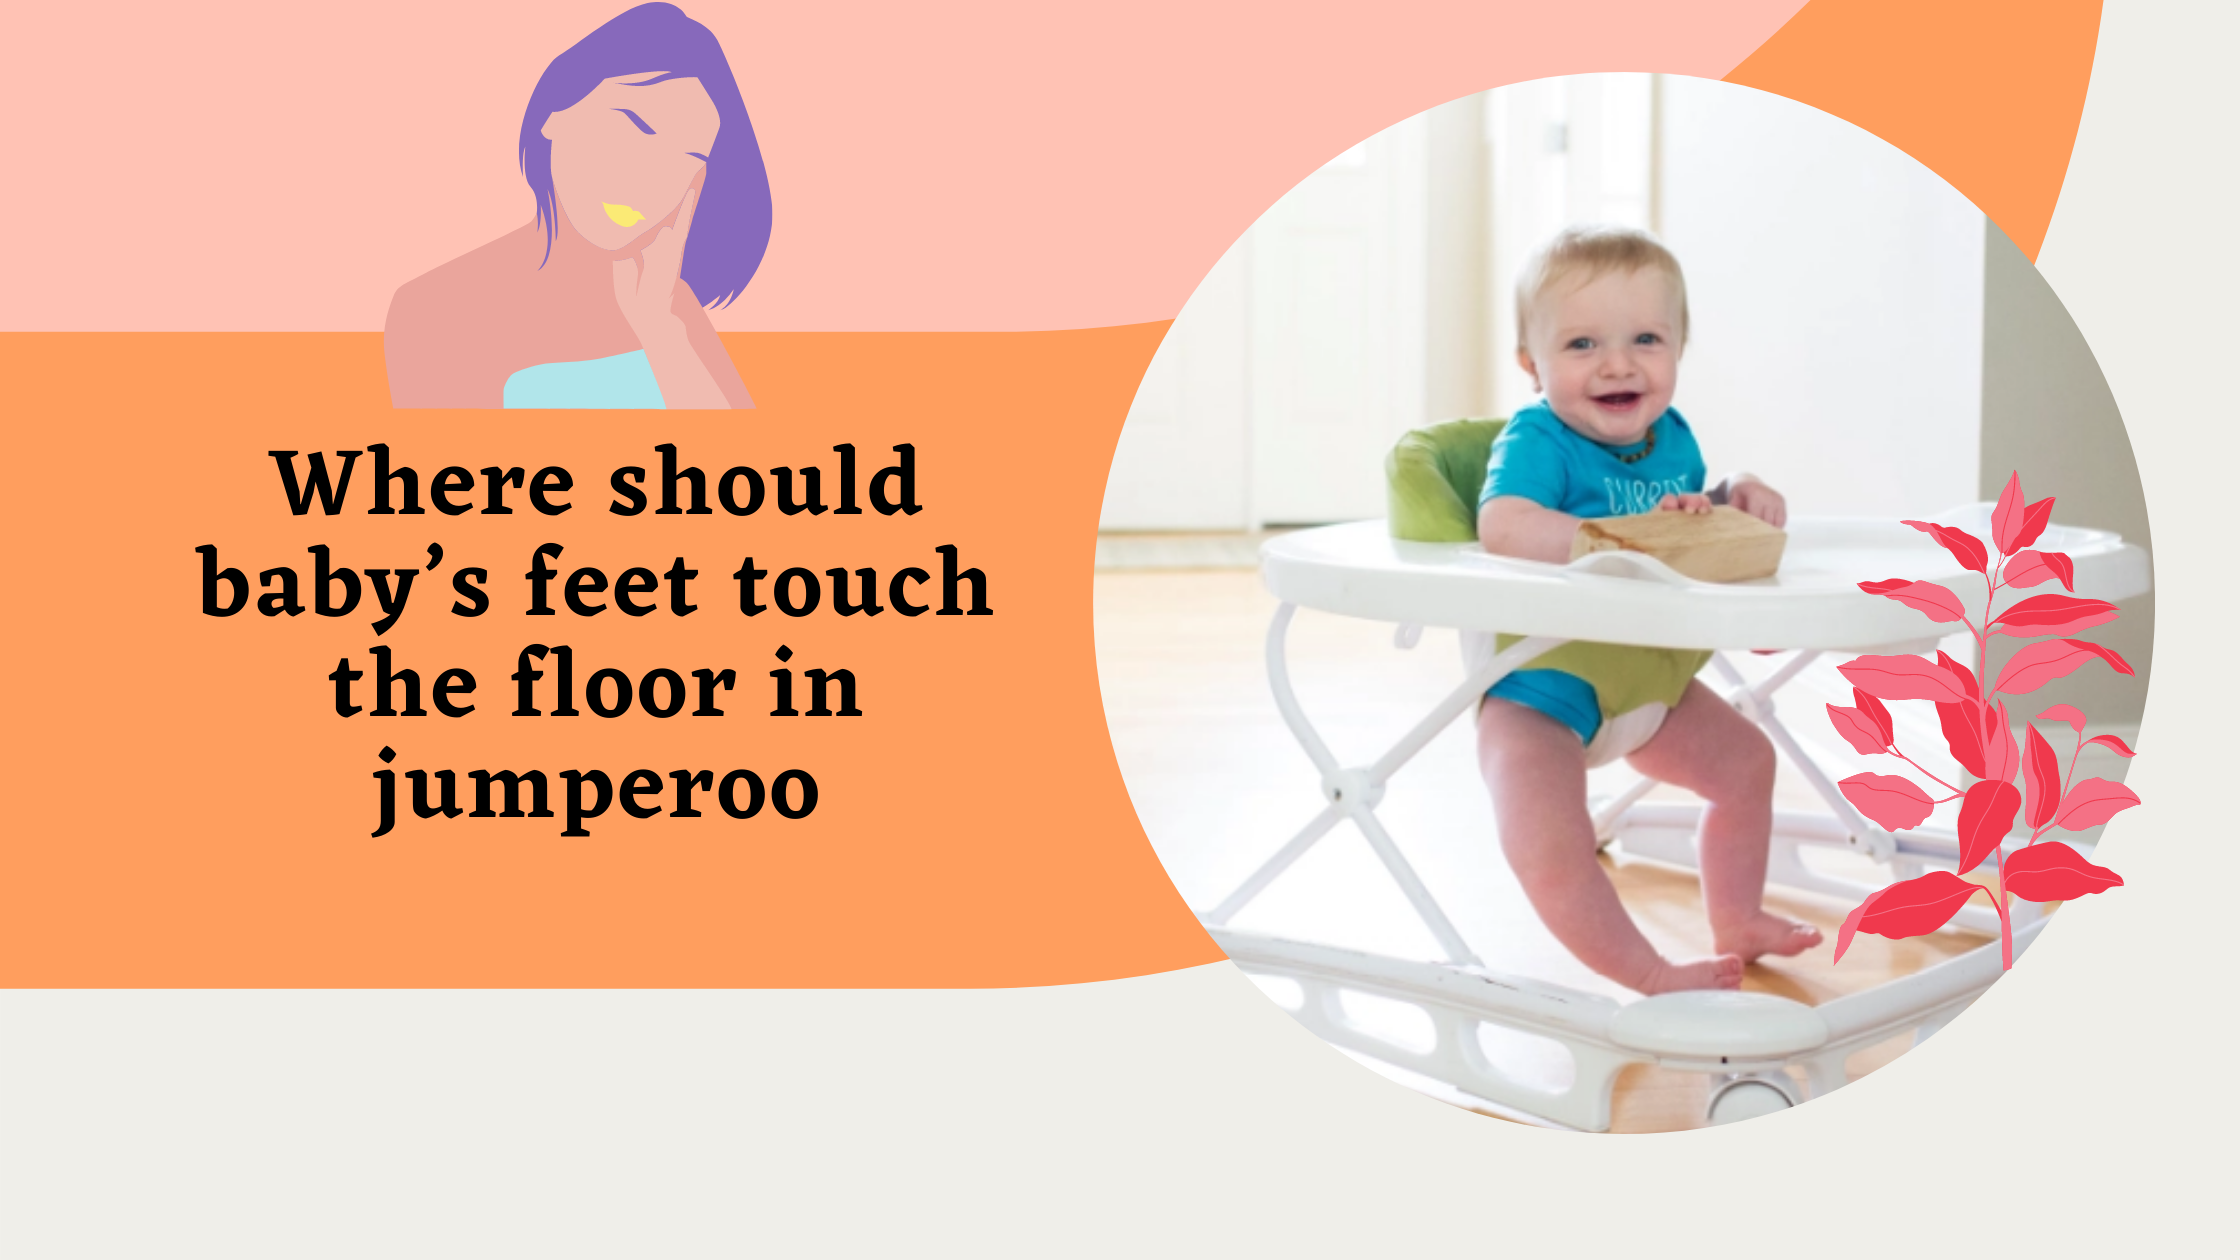 Where should baby's feet touch the floor in jumperoo